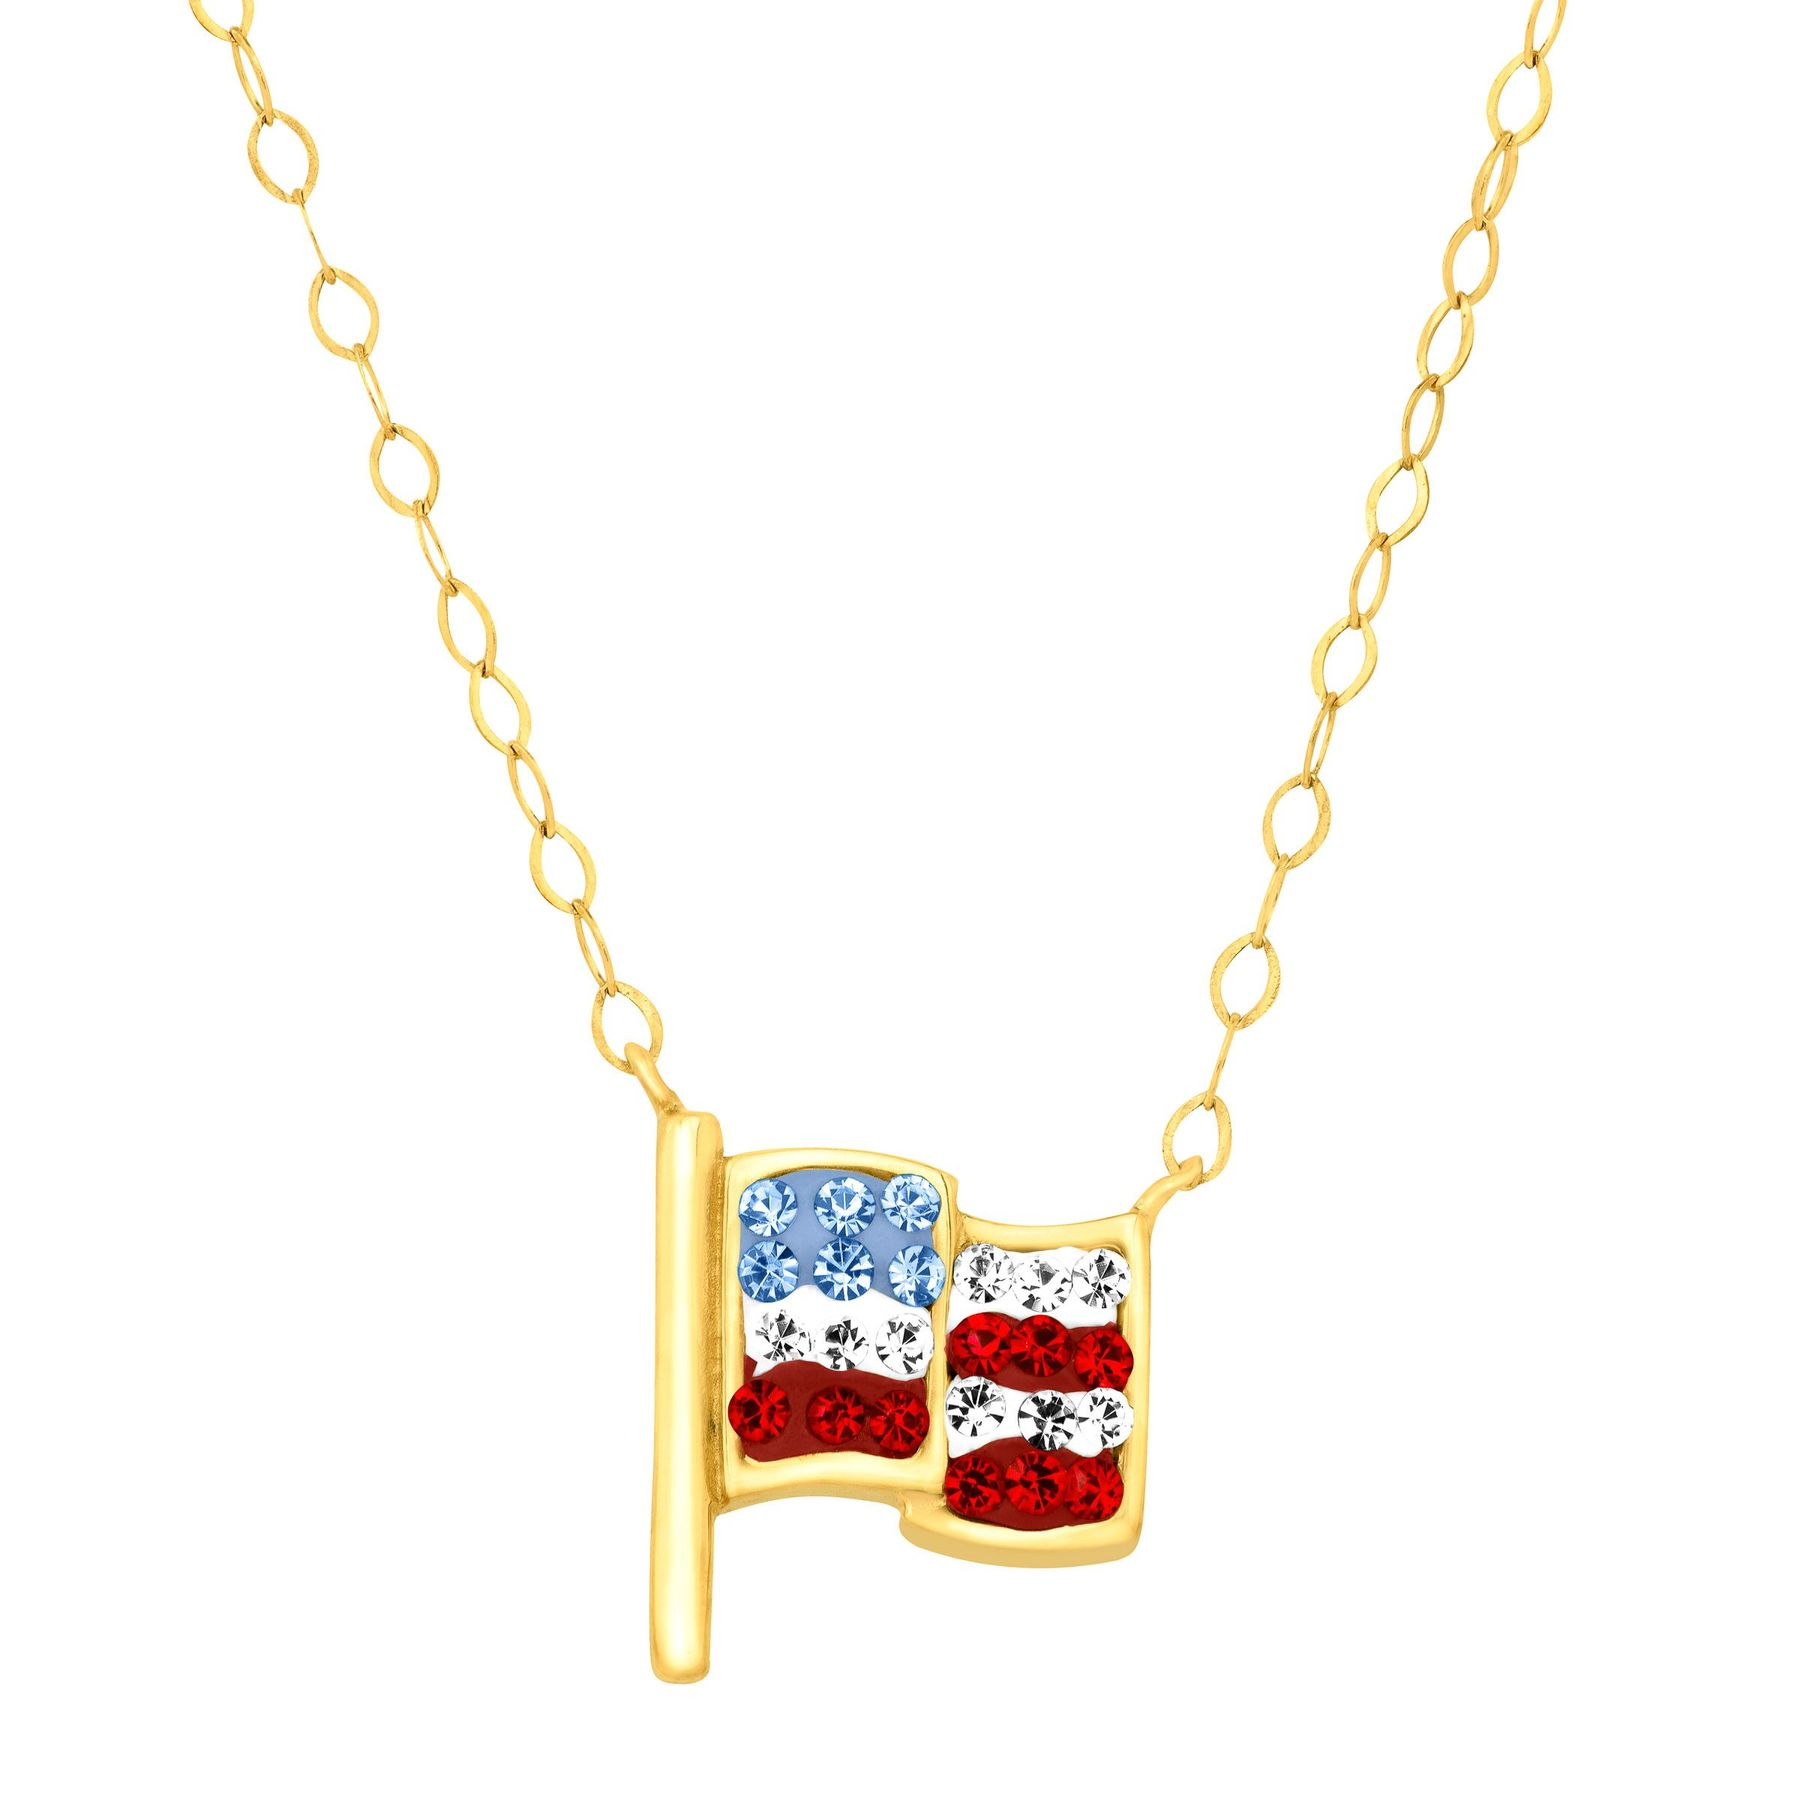 necklace yellow hot plated necklaces american for pendant product men chunky fashion silver wholesale gold flag friends gift women